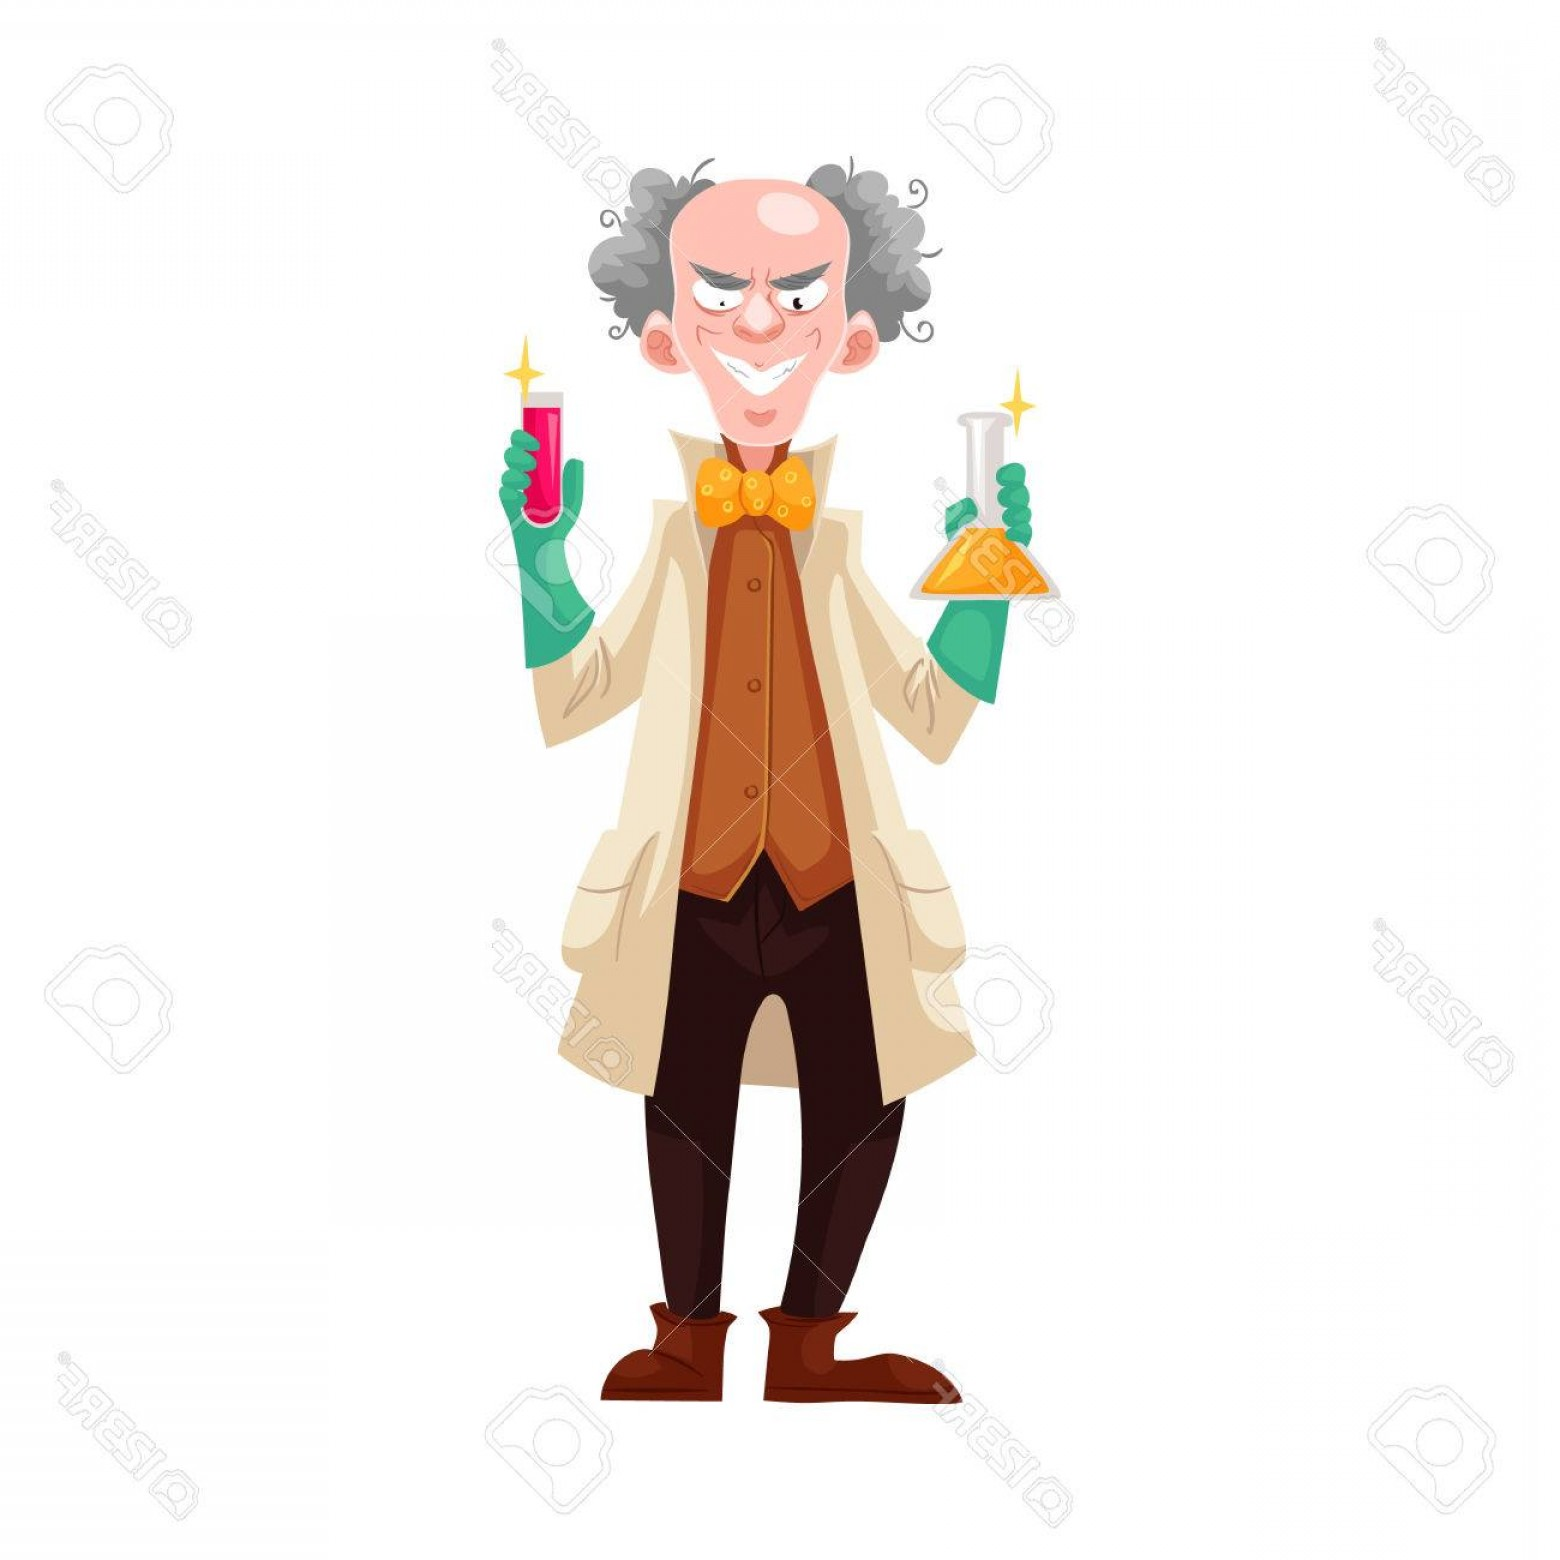 Lab Coat Cartoon Vector: Photostock Vector Mad Professor In Lab Coat And Green Rubber Gloves Holding Flasks Cartoon Vector Illustration Isolate